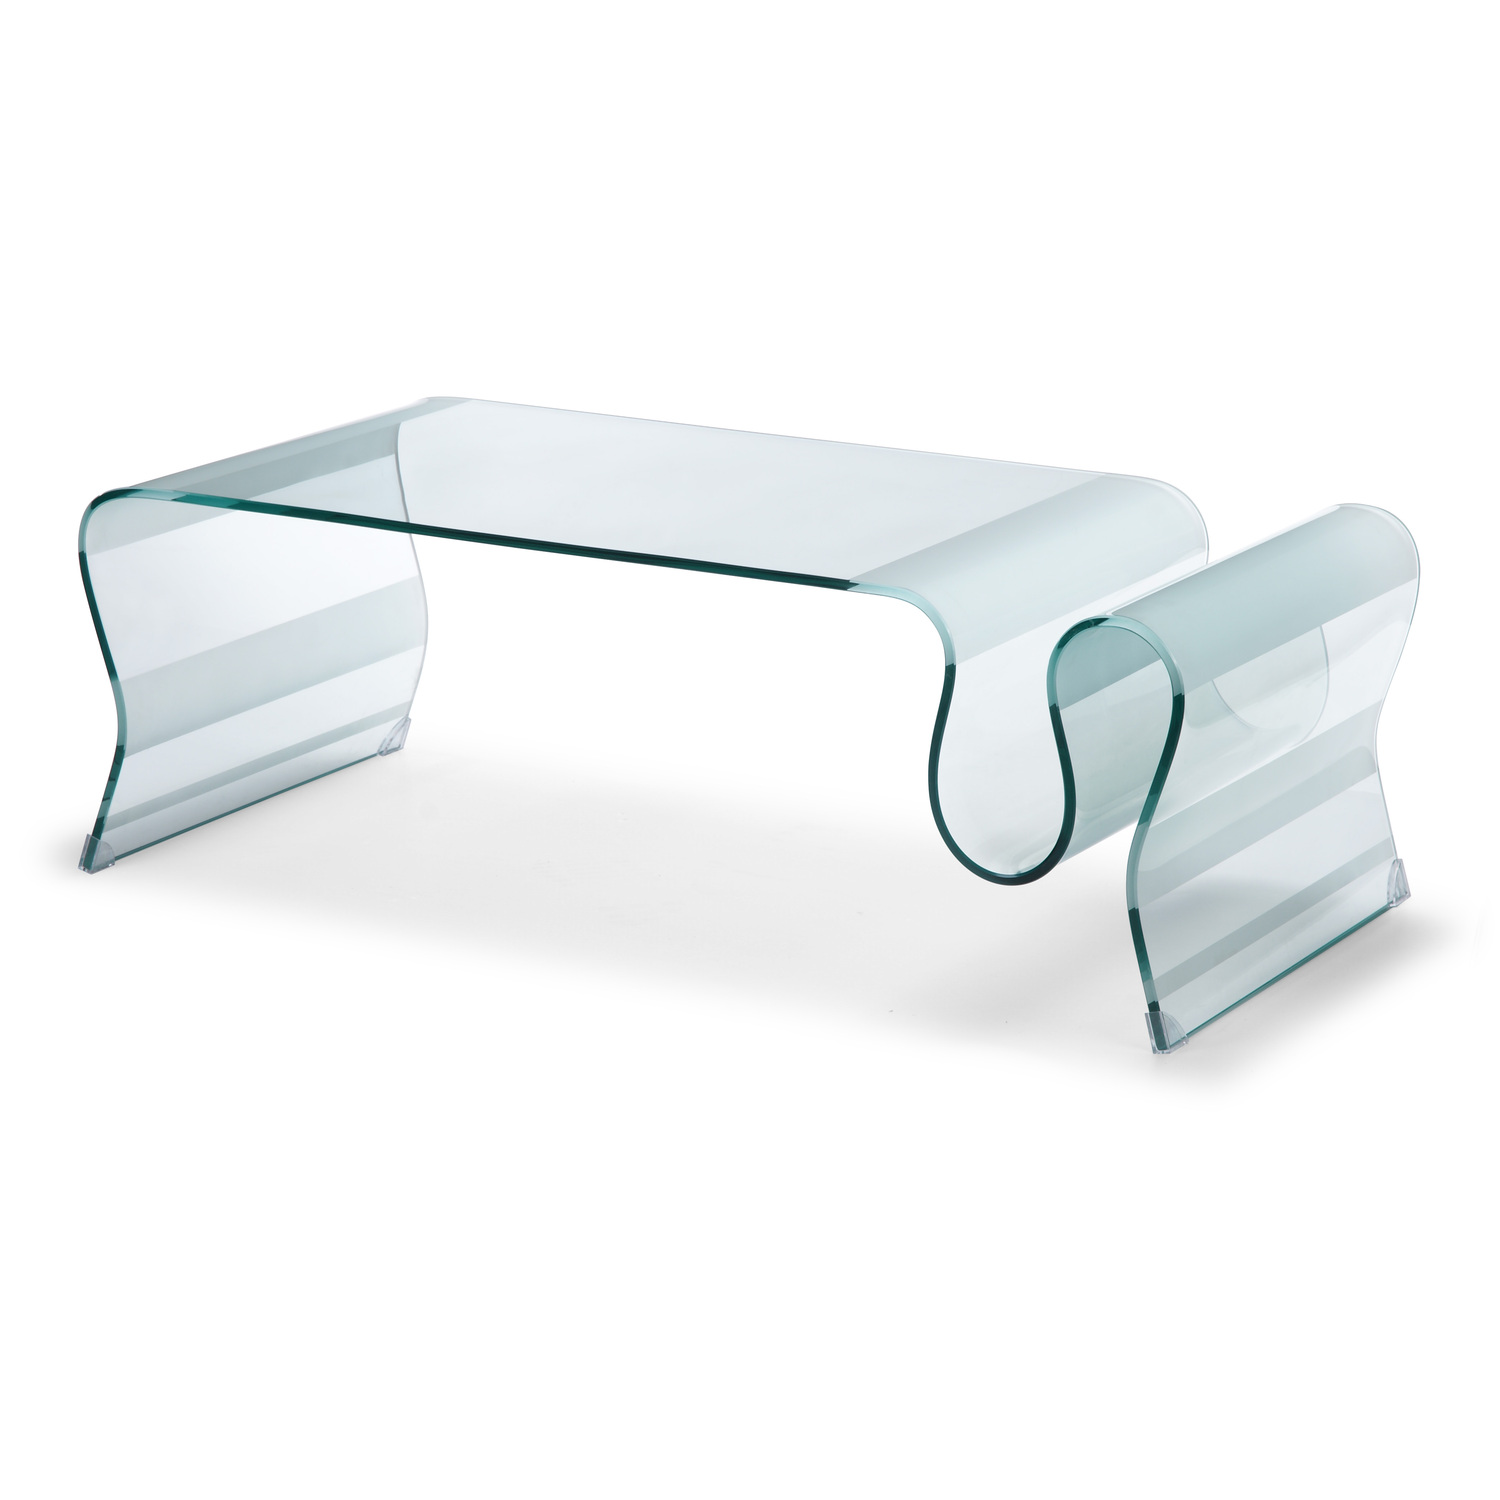 Zuo Modern Discovery Coffee Table Clear Glass By Oj Commerce 404102